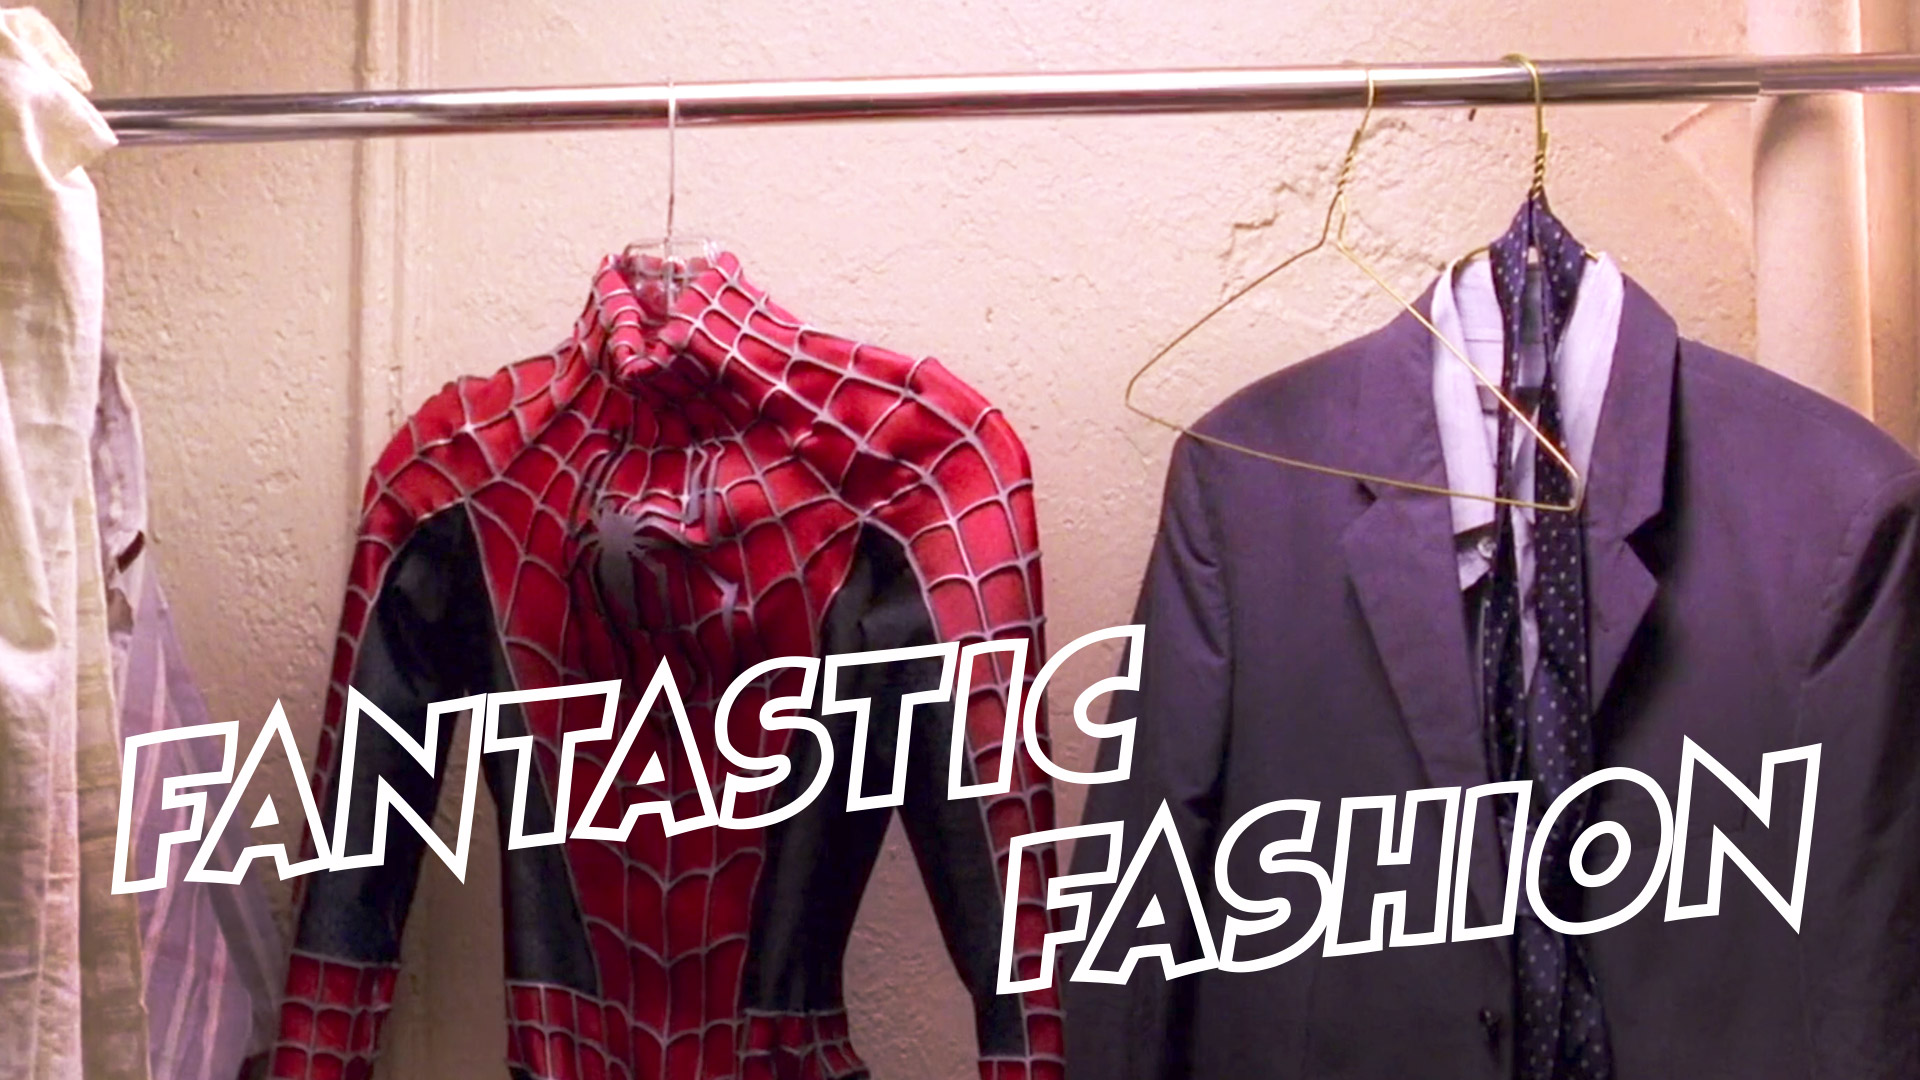 fantasticfashion